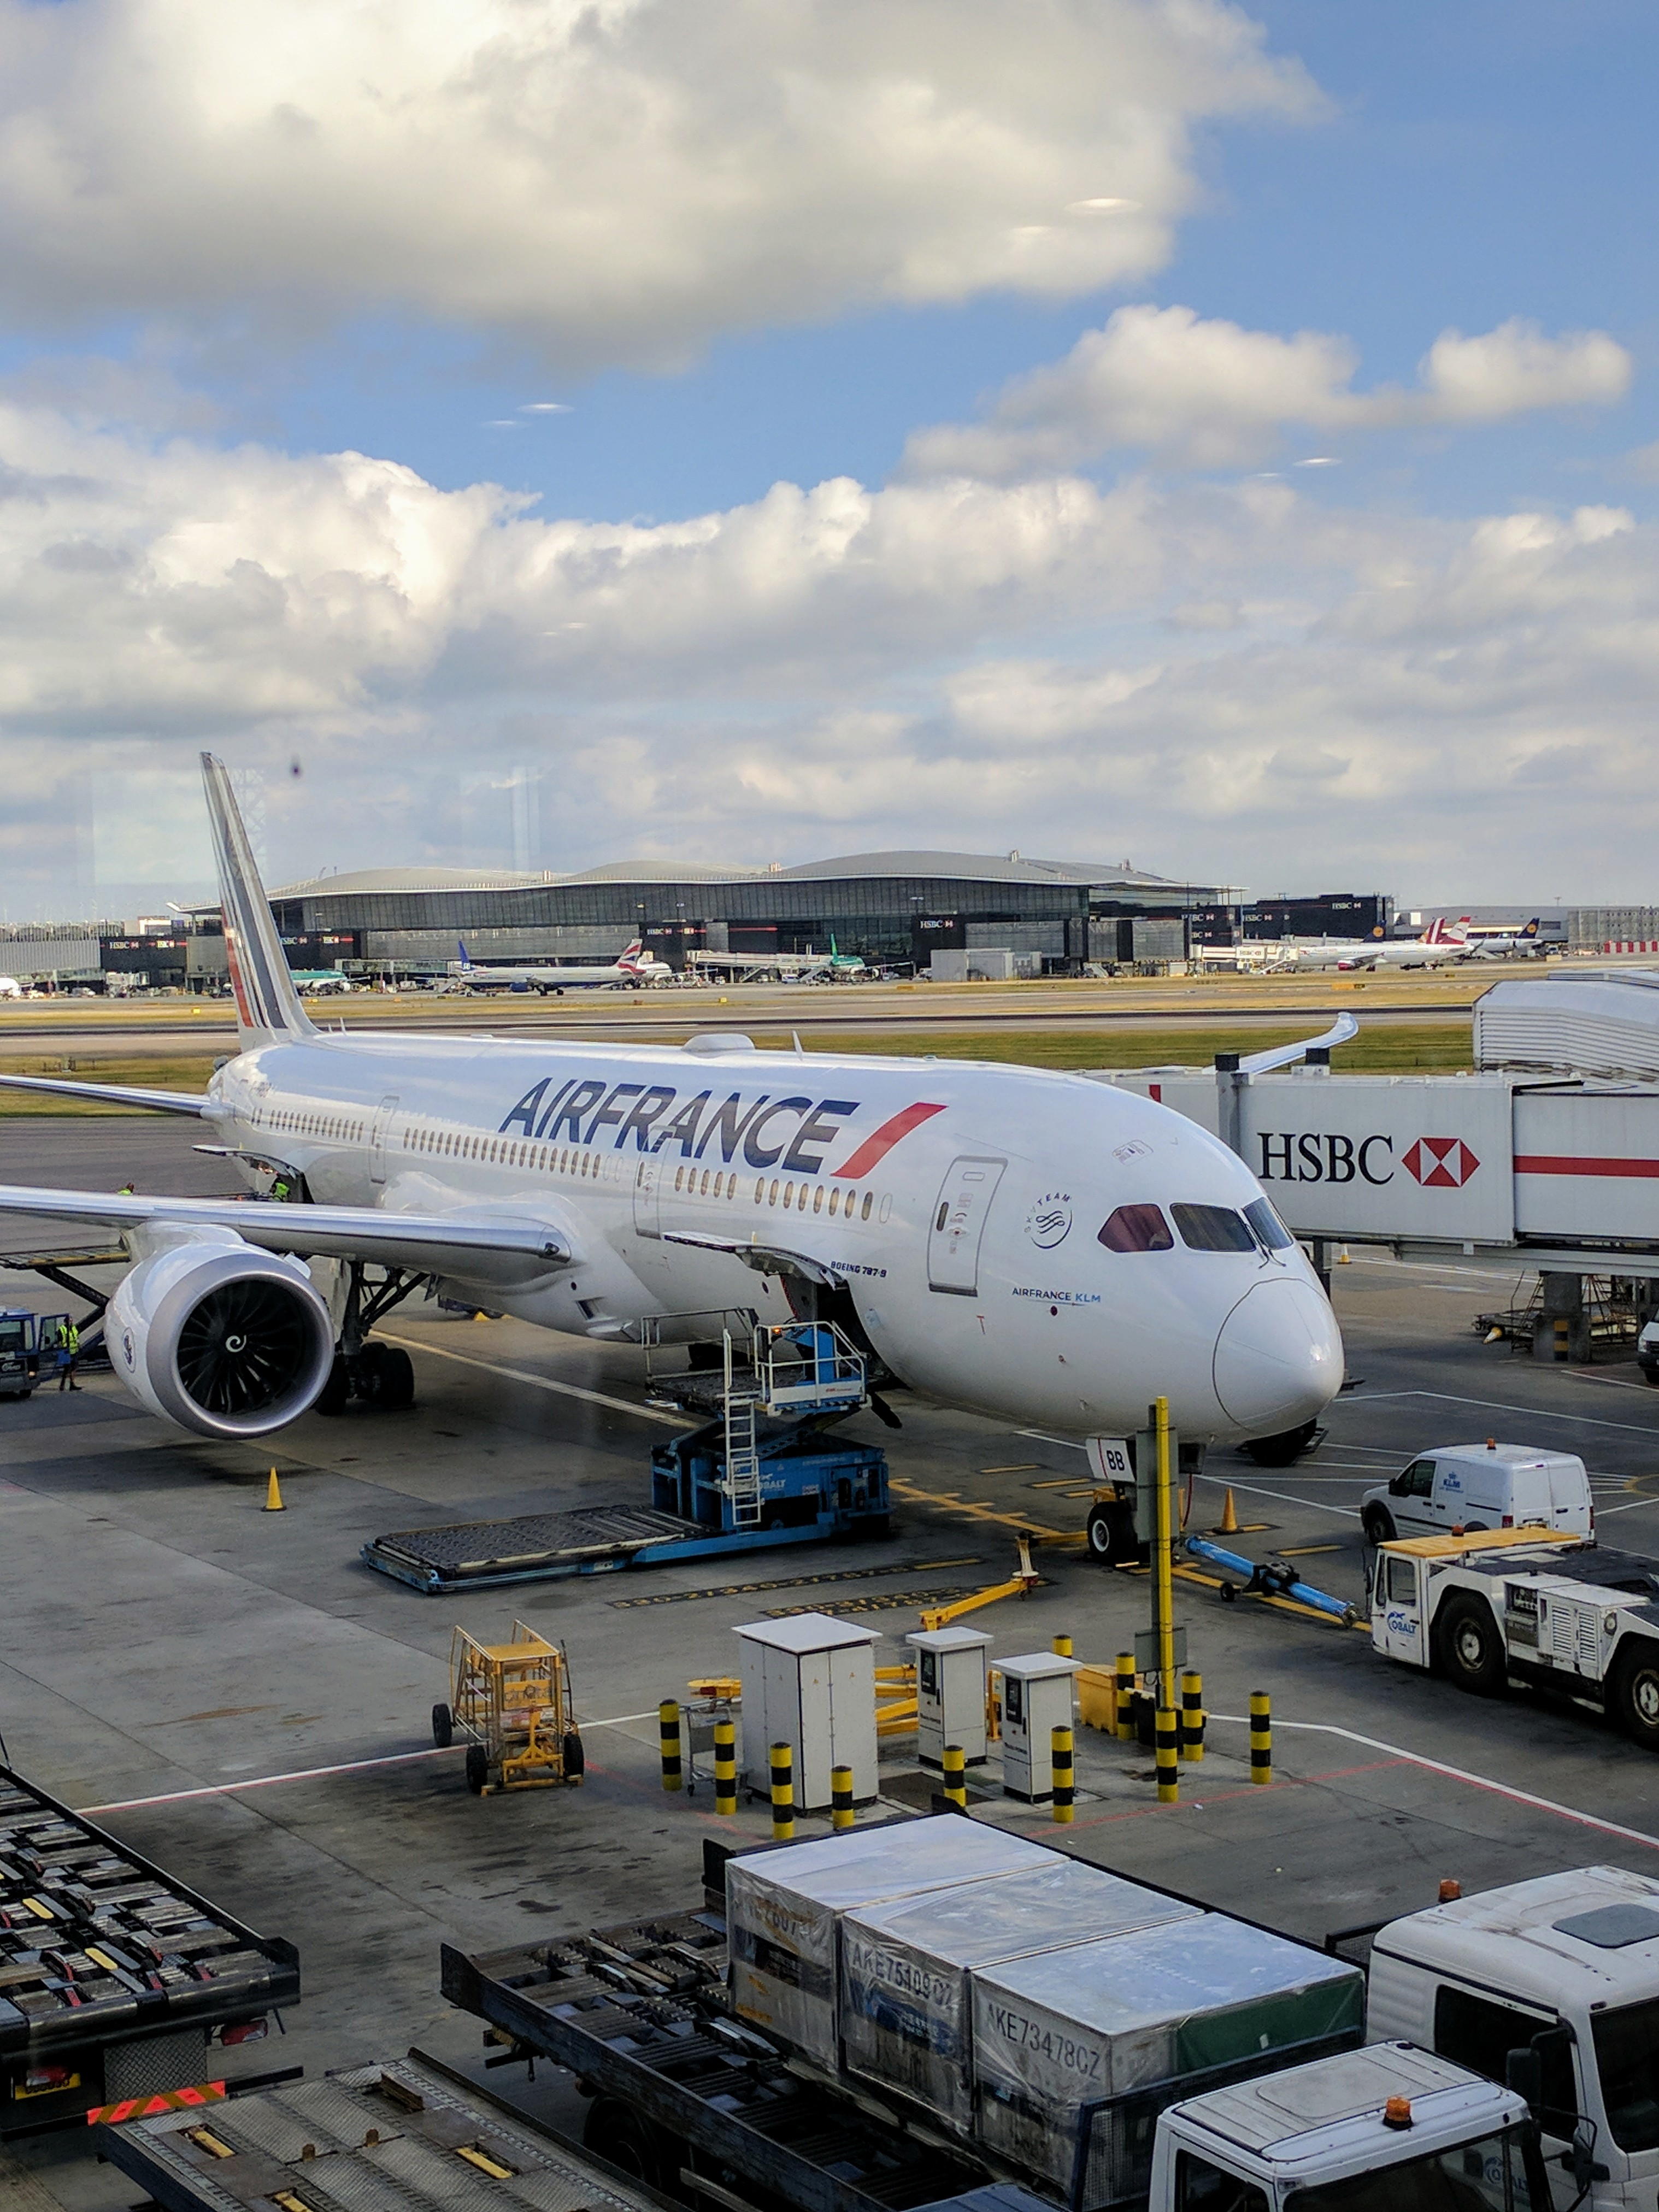 aviation and economics The airline industry itself is a major economic force, both in terms of its own operations and its impacts on related industries such as aircraft manufacturing and tourism, to name but two.